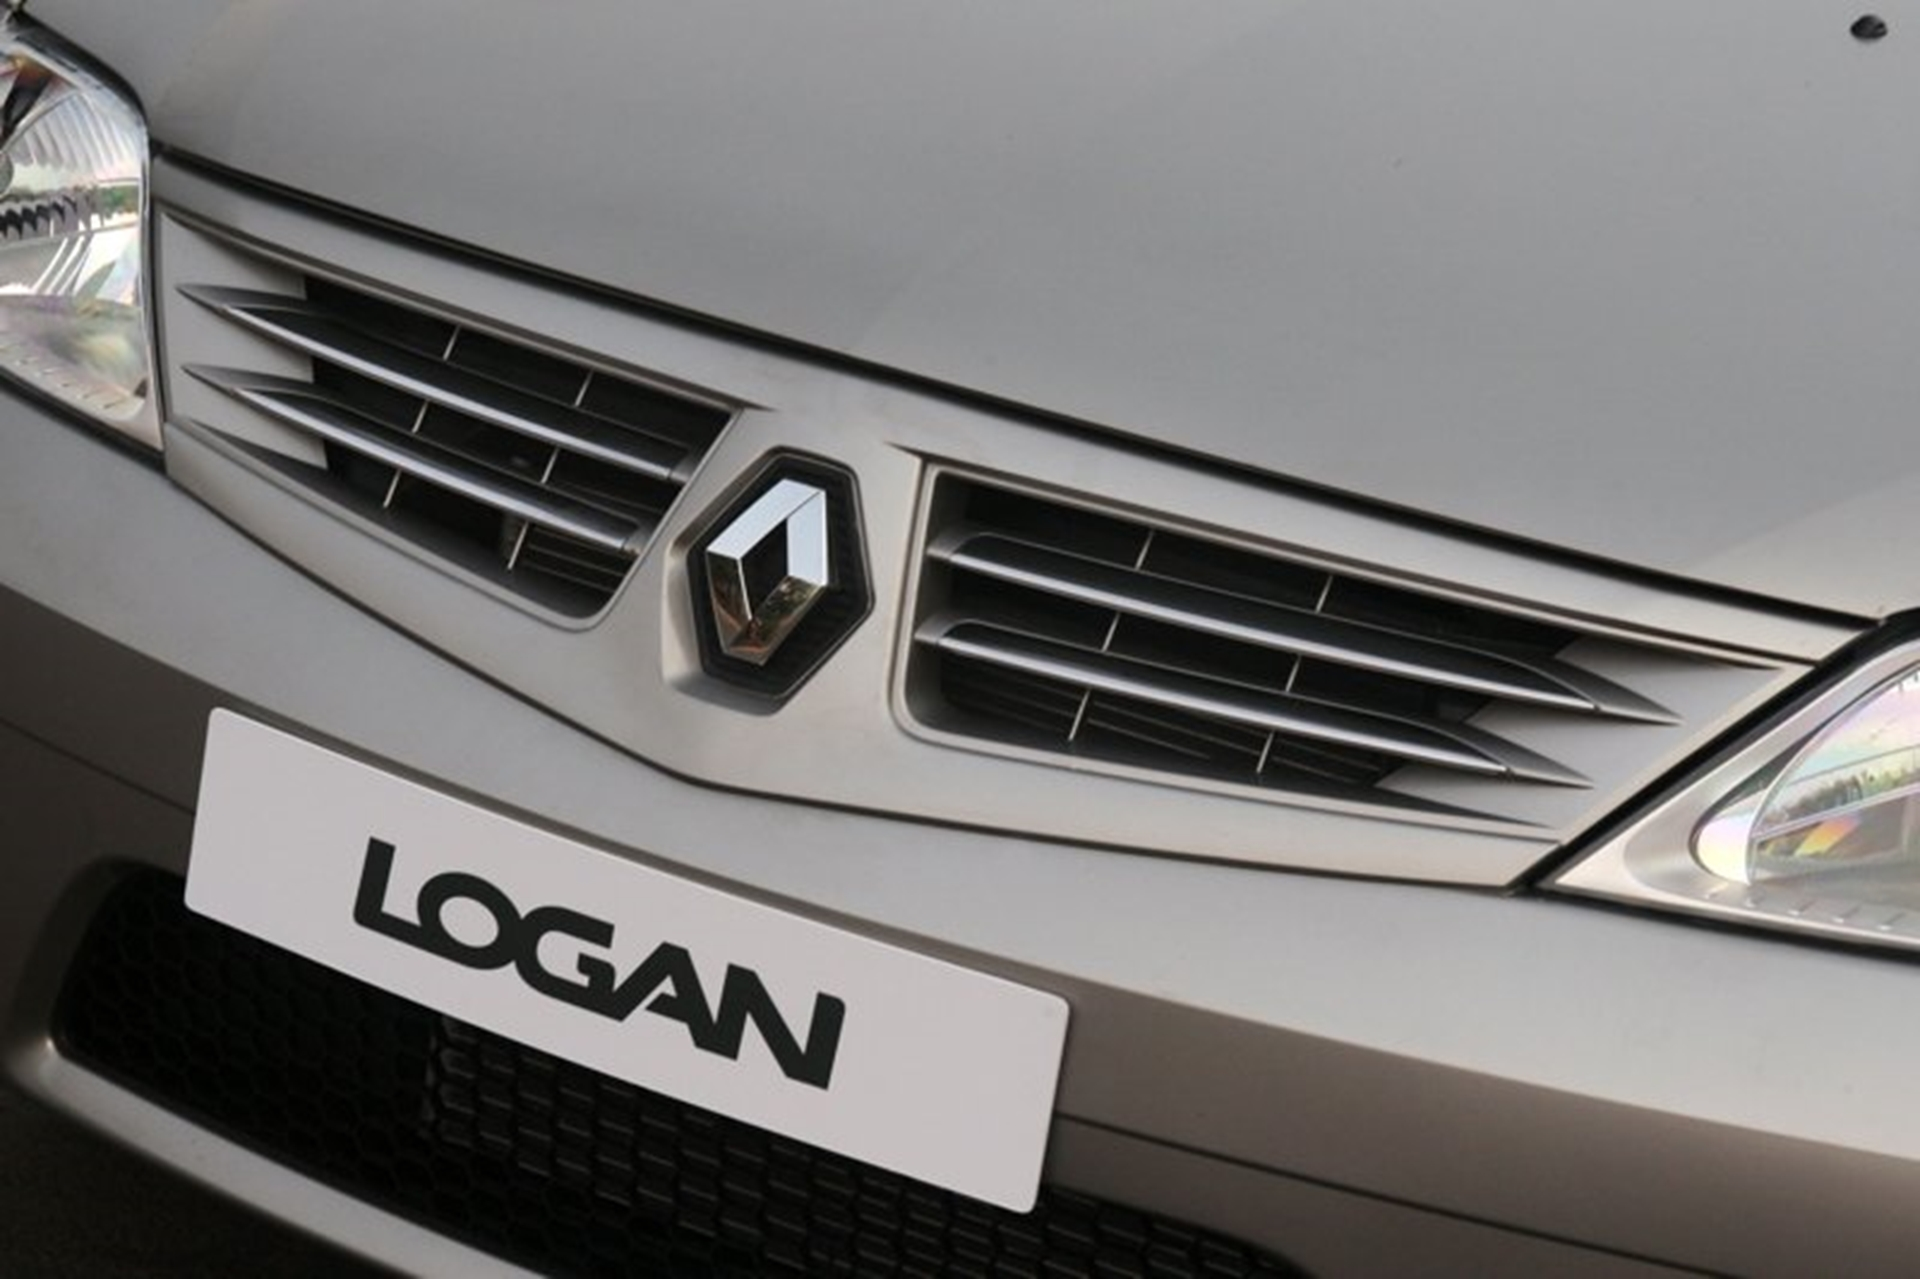 Renault Logan Logo and Grill